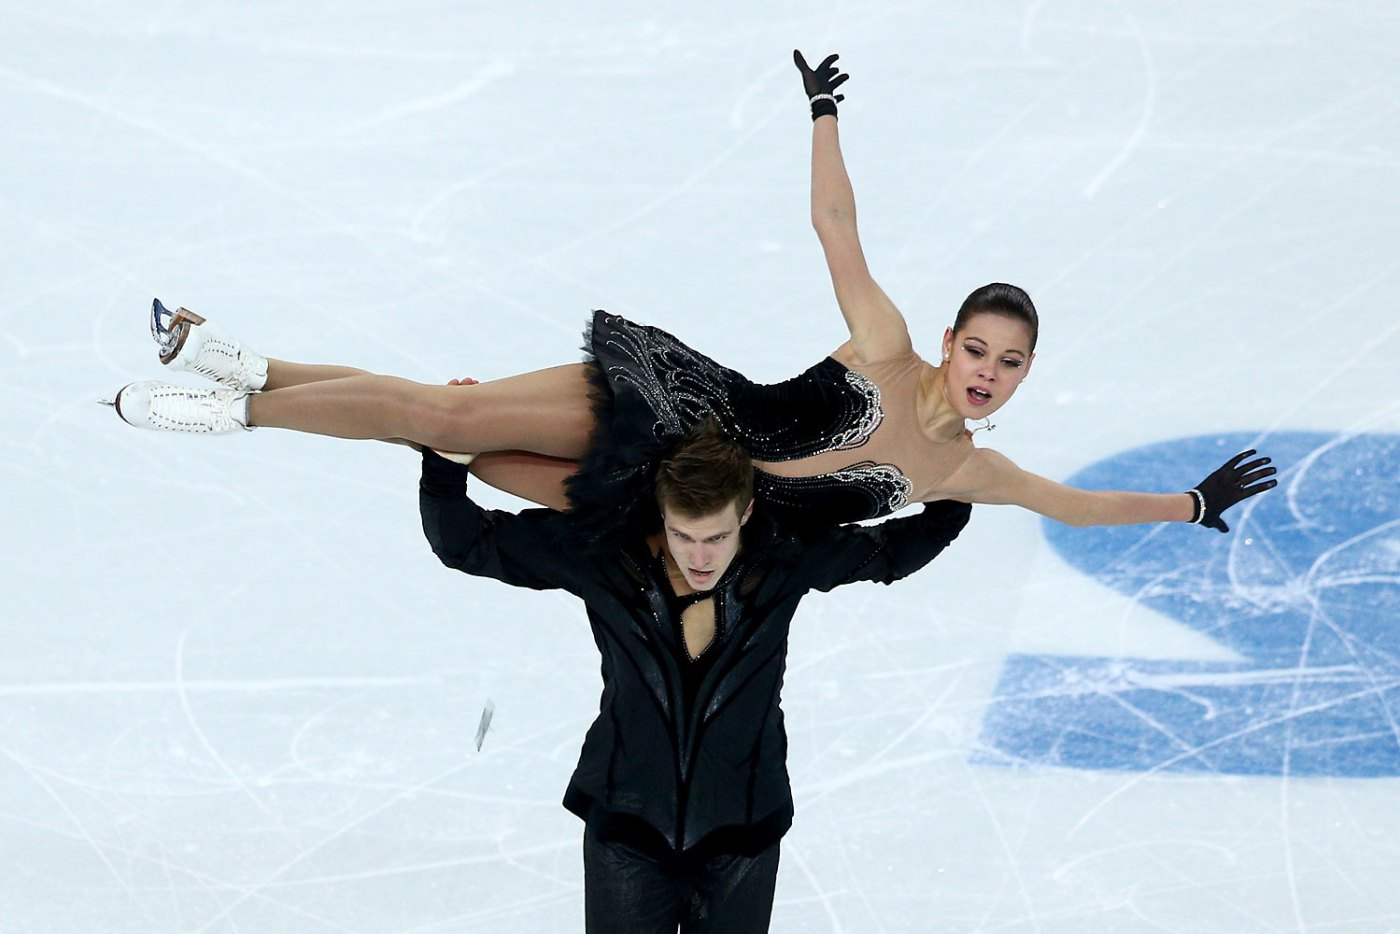 The blur on the left is a feather falling from Russia's Elena Ilinykh's costume as she and partner Nikita Katsalapov compete in the team skating event during day two of the Sochi 2014 Winter Olympics. The ice dancers lost a point for the wardrobe malfunction.